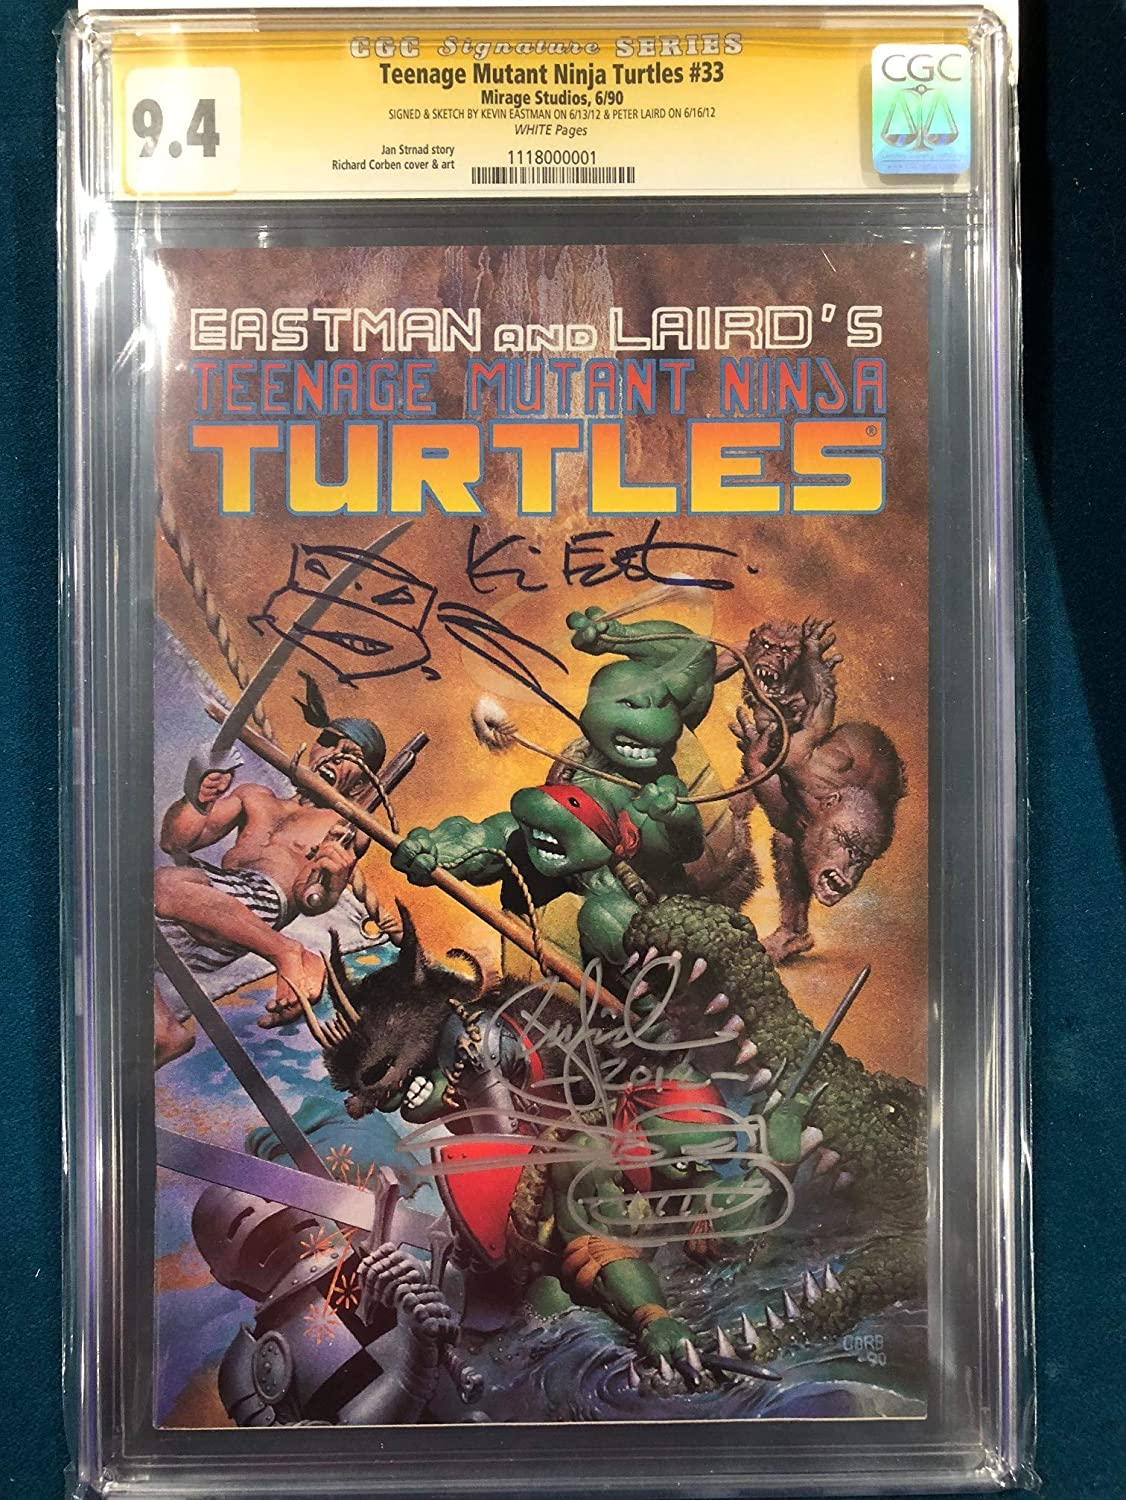 KEVIN EASTMAN PETER LAIRD SIGNED ORIGINAL TMNT Sketch Art ...